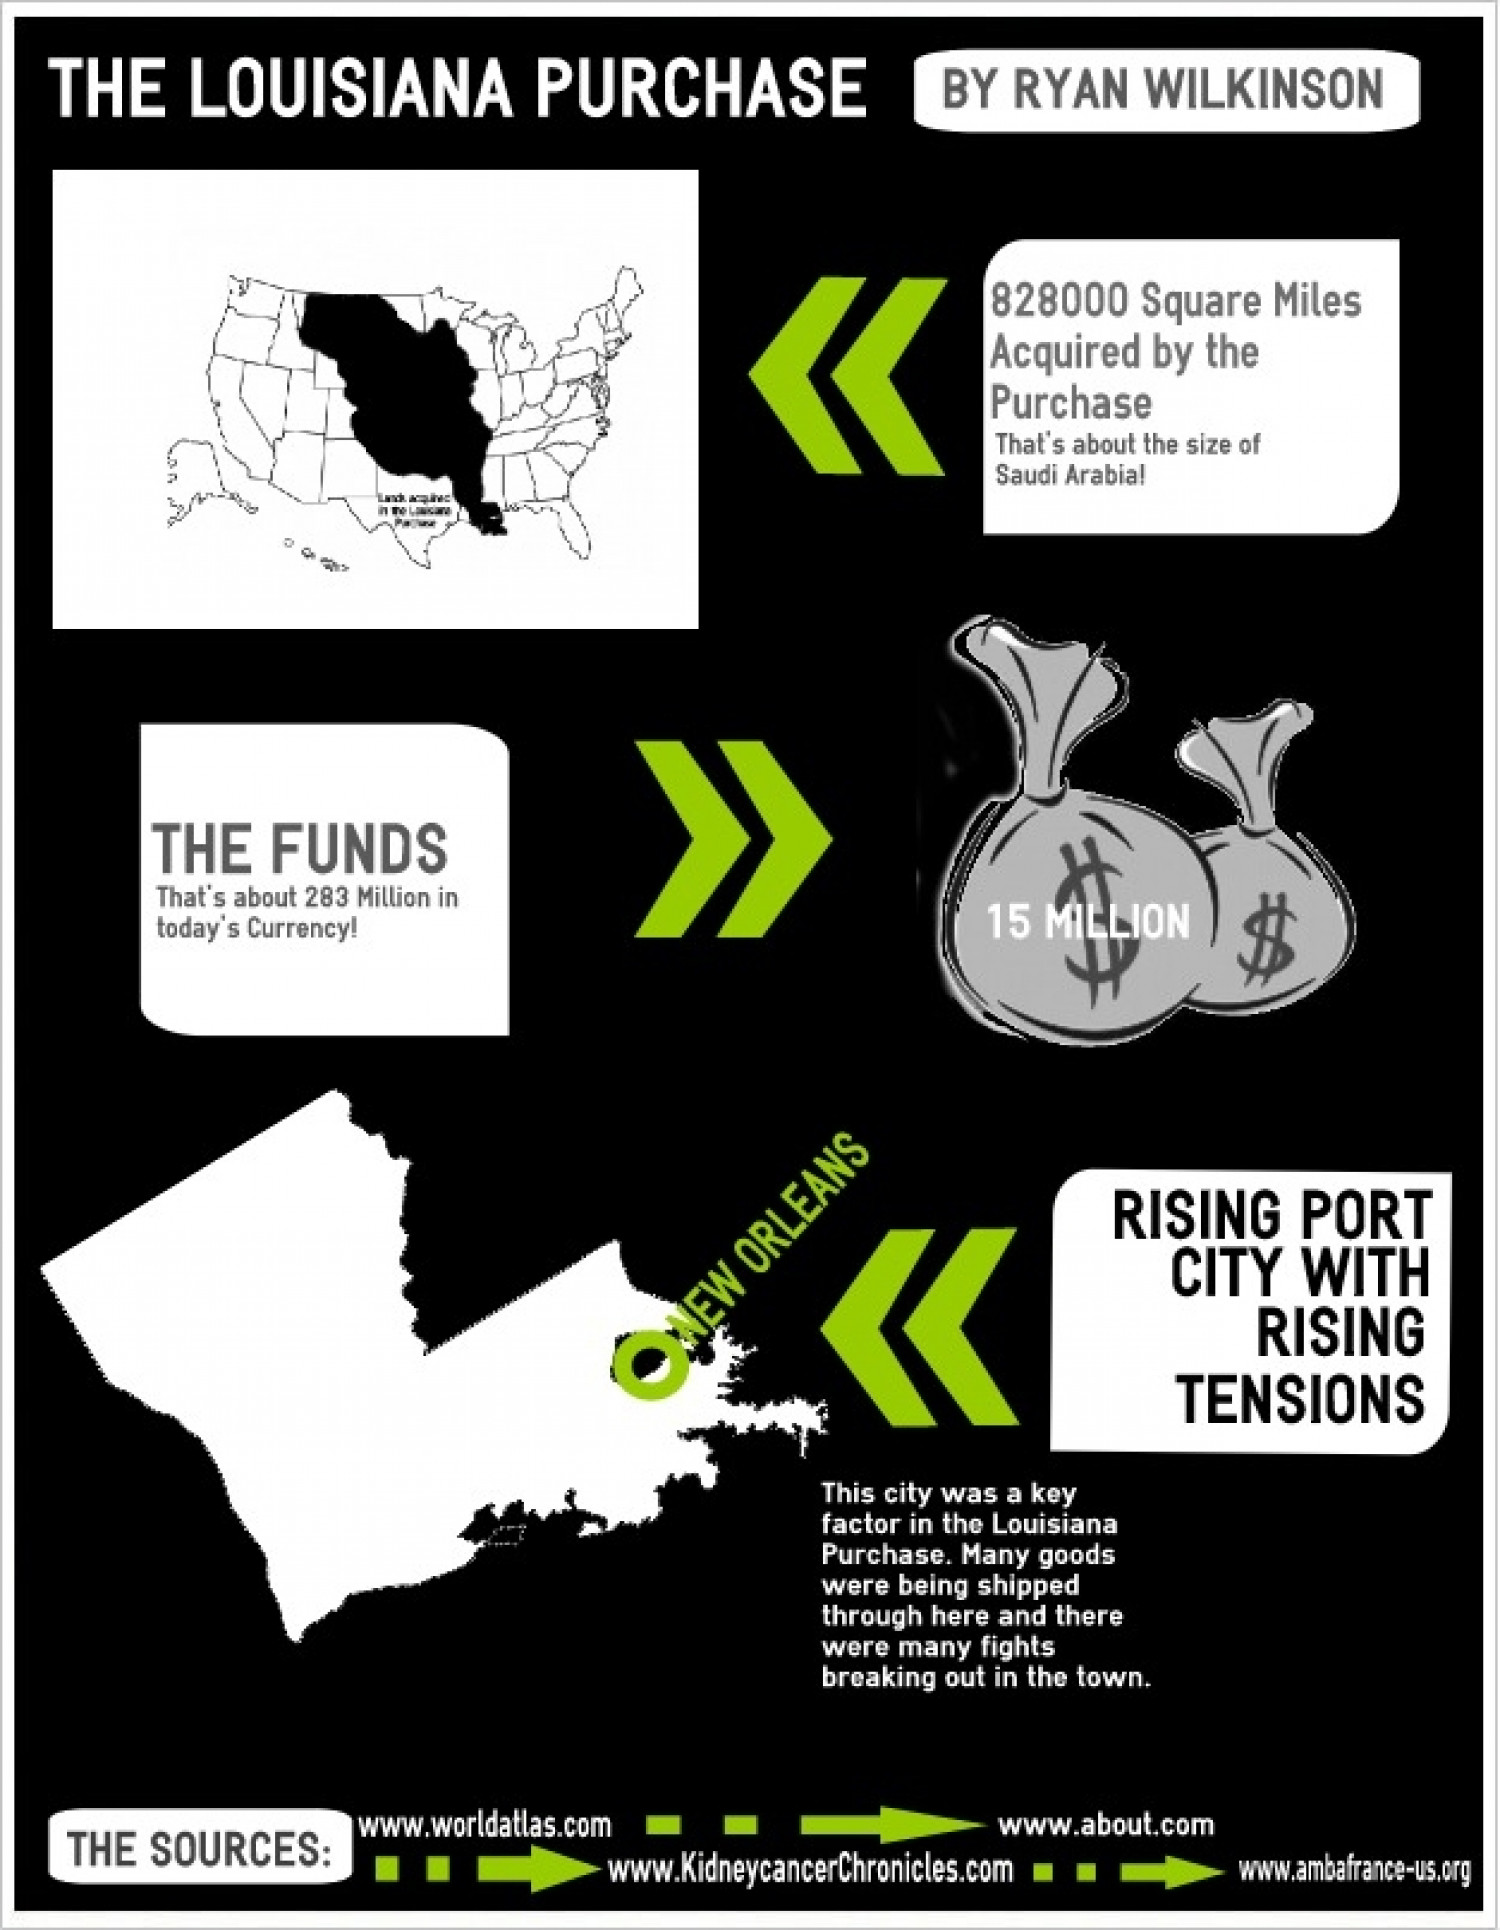 The Louisiana Purchase Infographic